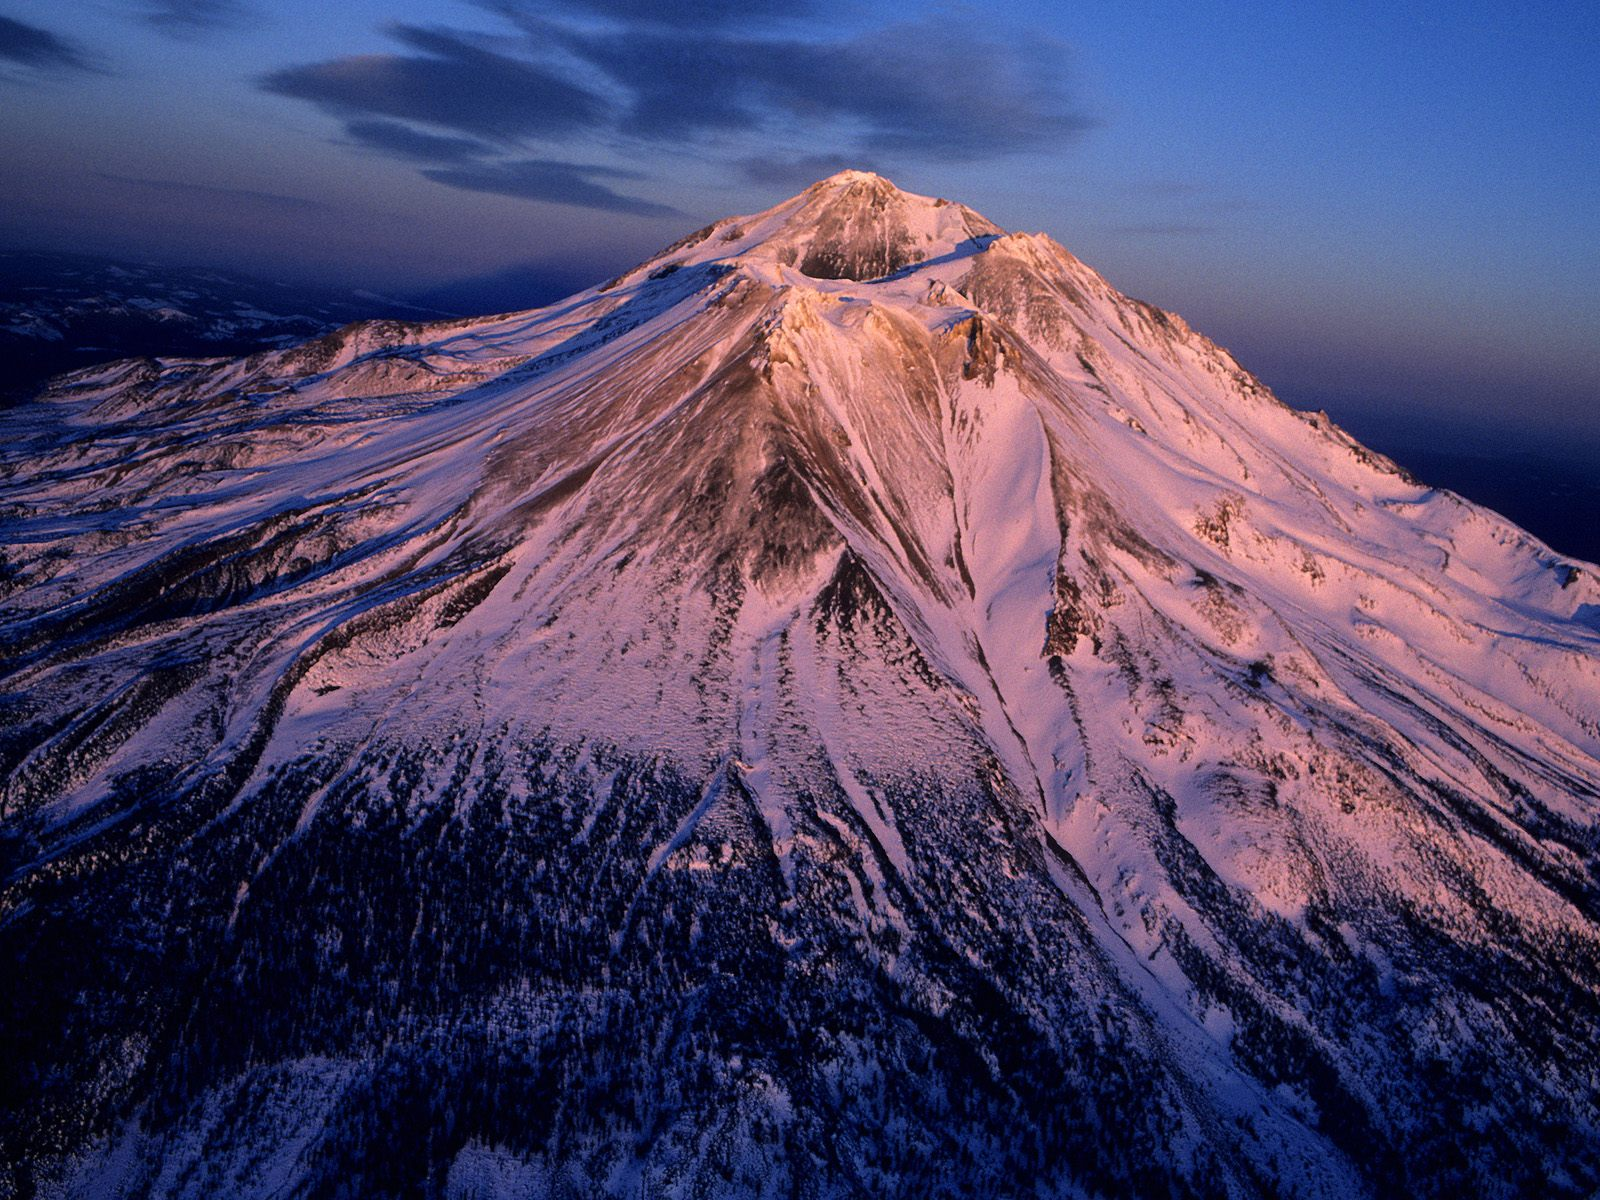 http://1.bp.blogspot.com/-9hLwN82ANrg/ToQjiVY6l0I/AAAAAAAABX0/hBoGDIBQ28E/s1600/Aerial+View+of+Mount+Shasta%252C+California.jpg